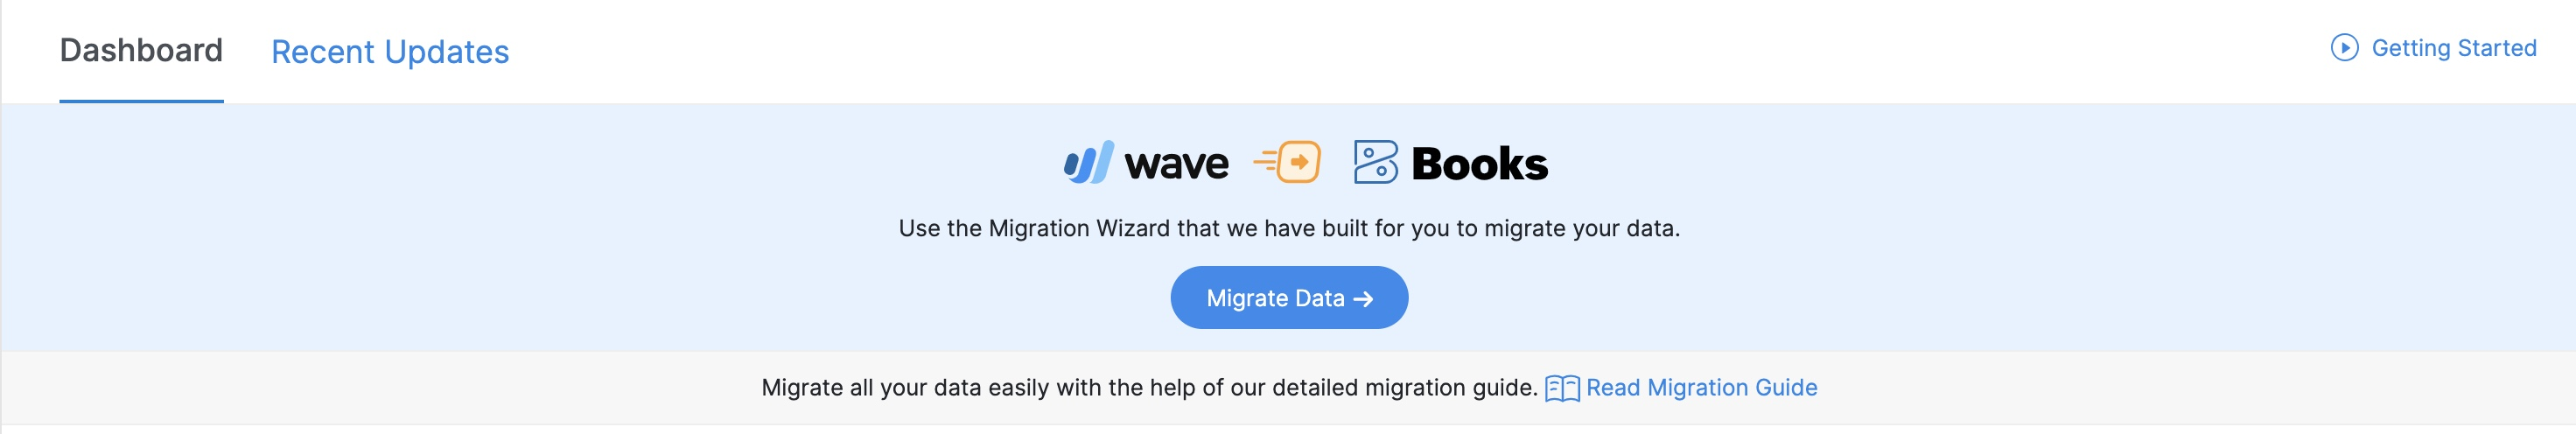 Migration Wizard